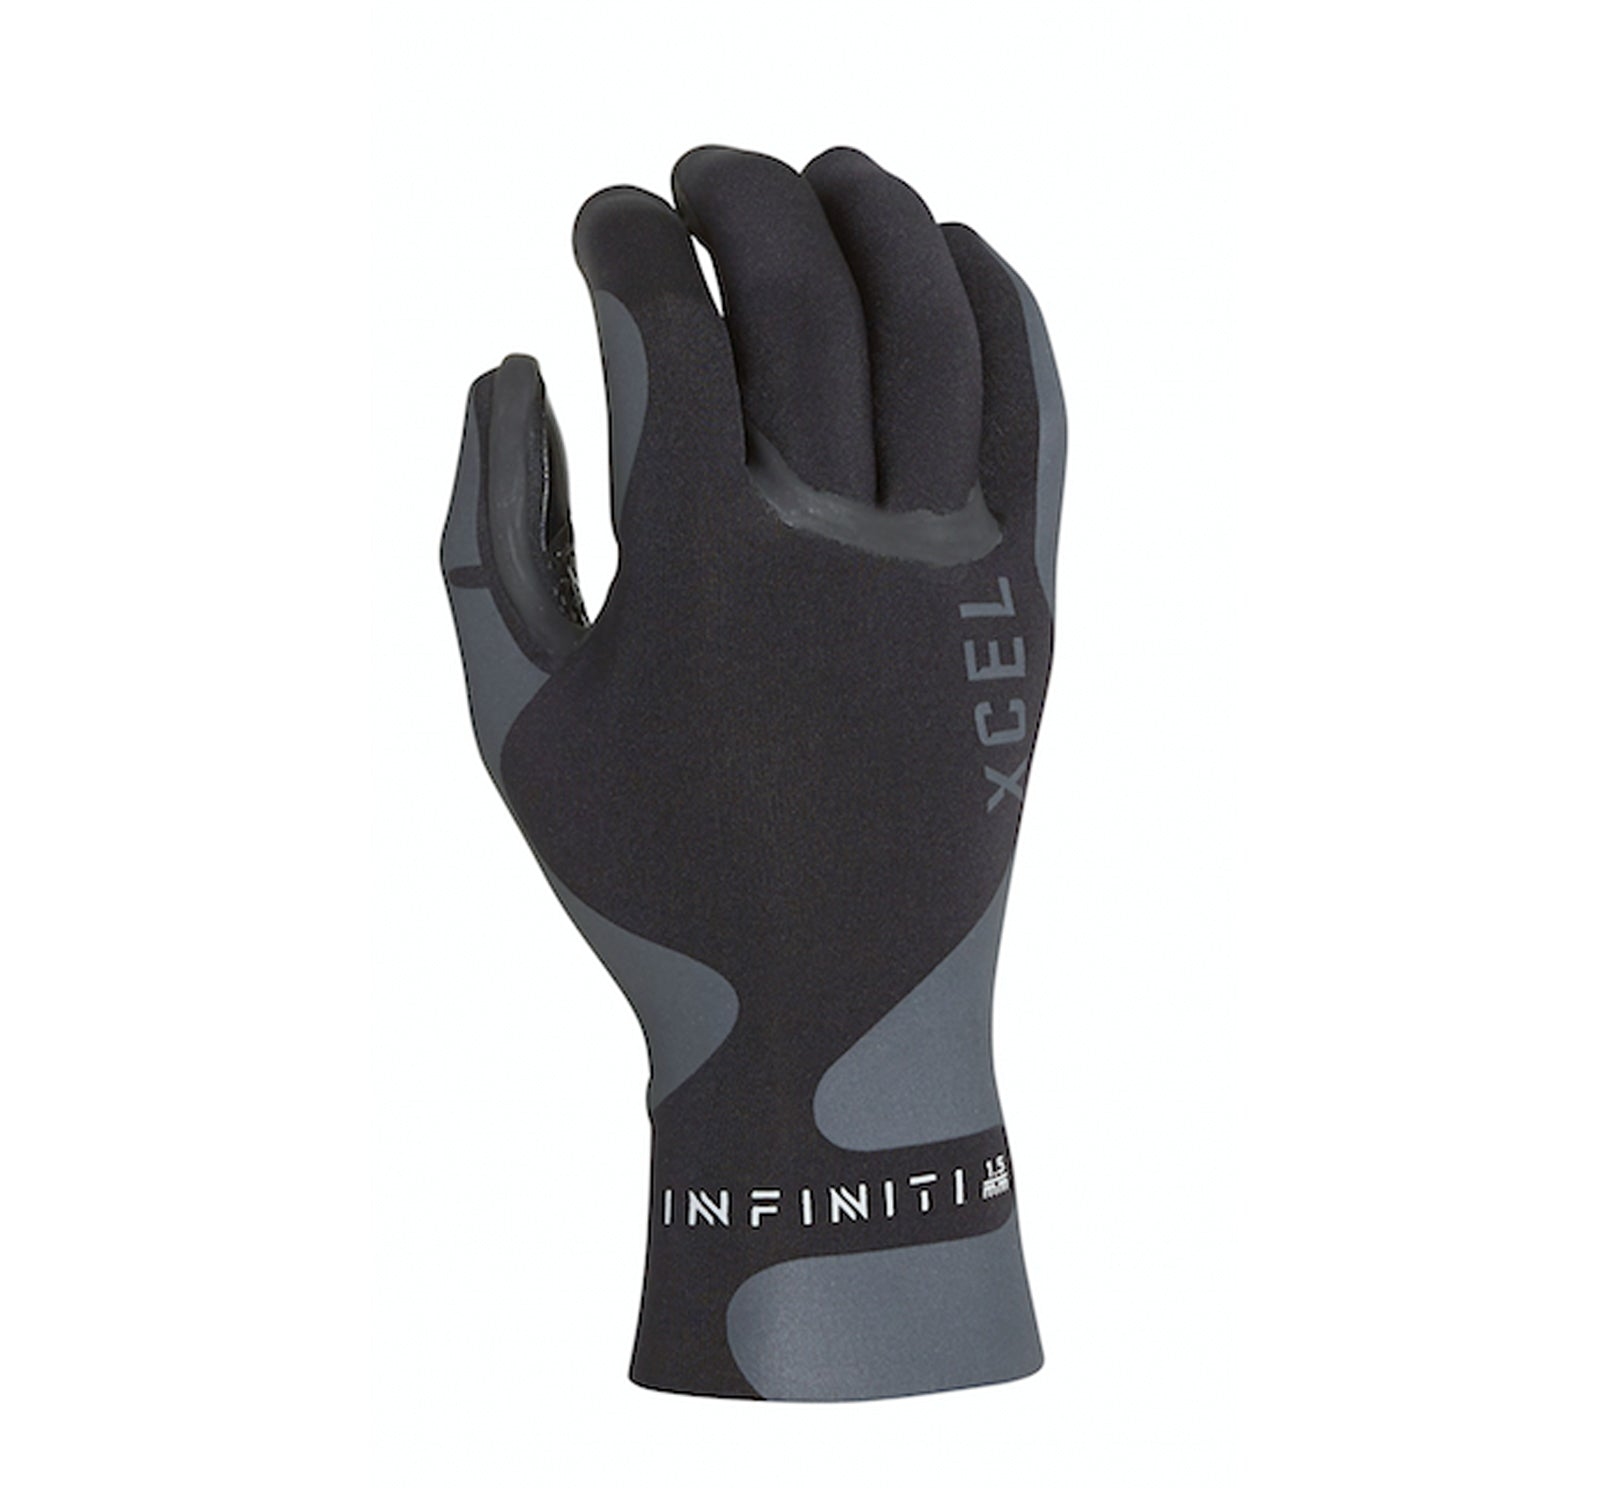 Xcel Infiniti S 1.5mm Men's Wetsuit Gloves